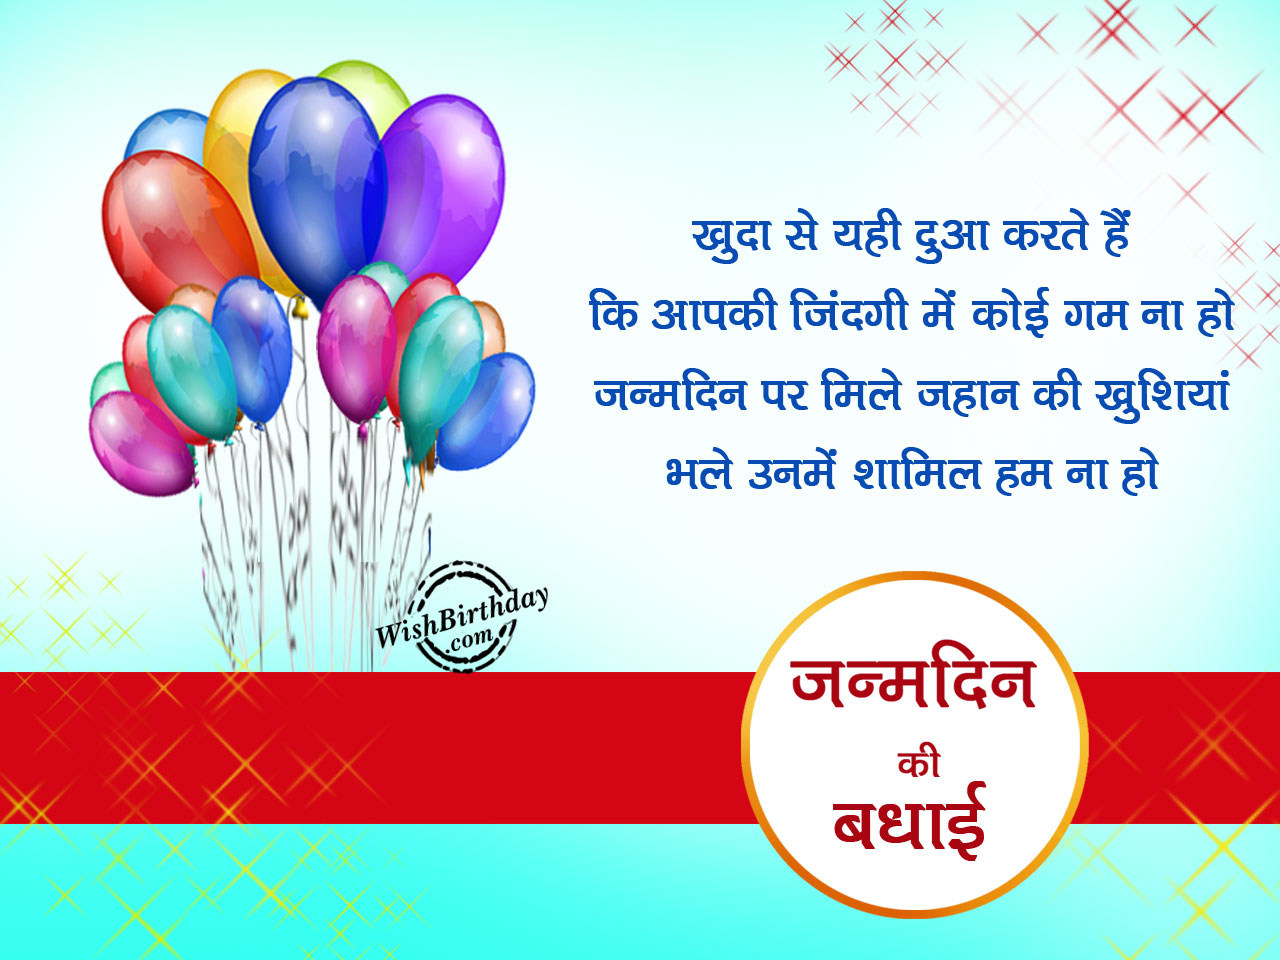 Birthday Wishes In Hindi Birthday Images Pictures – Birthday Greetings in Hindi